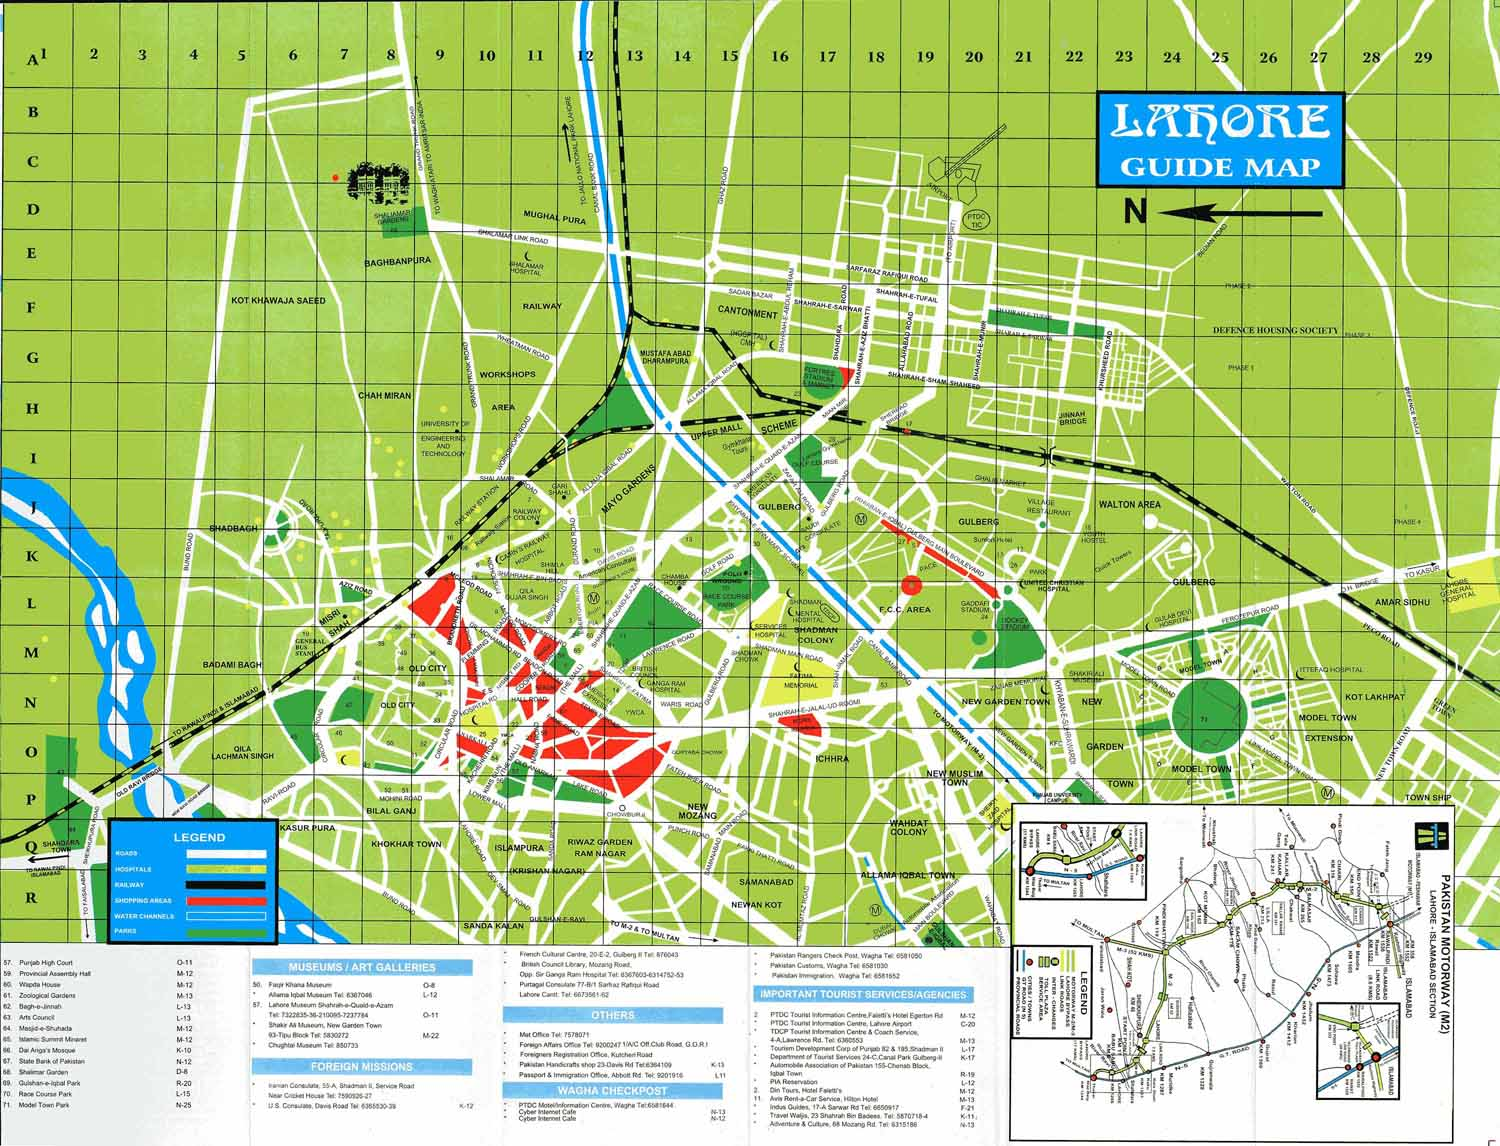 lahore guide map  lahore pakistan • mappery -